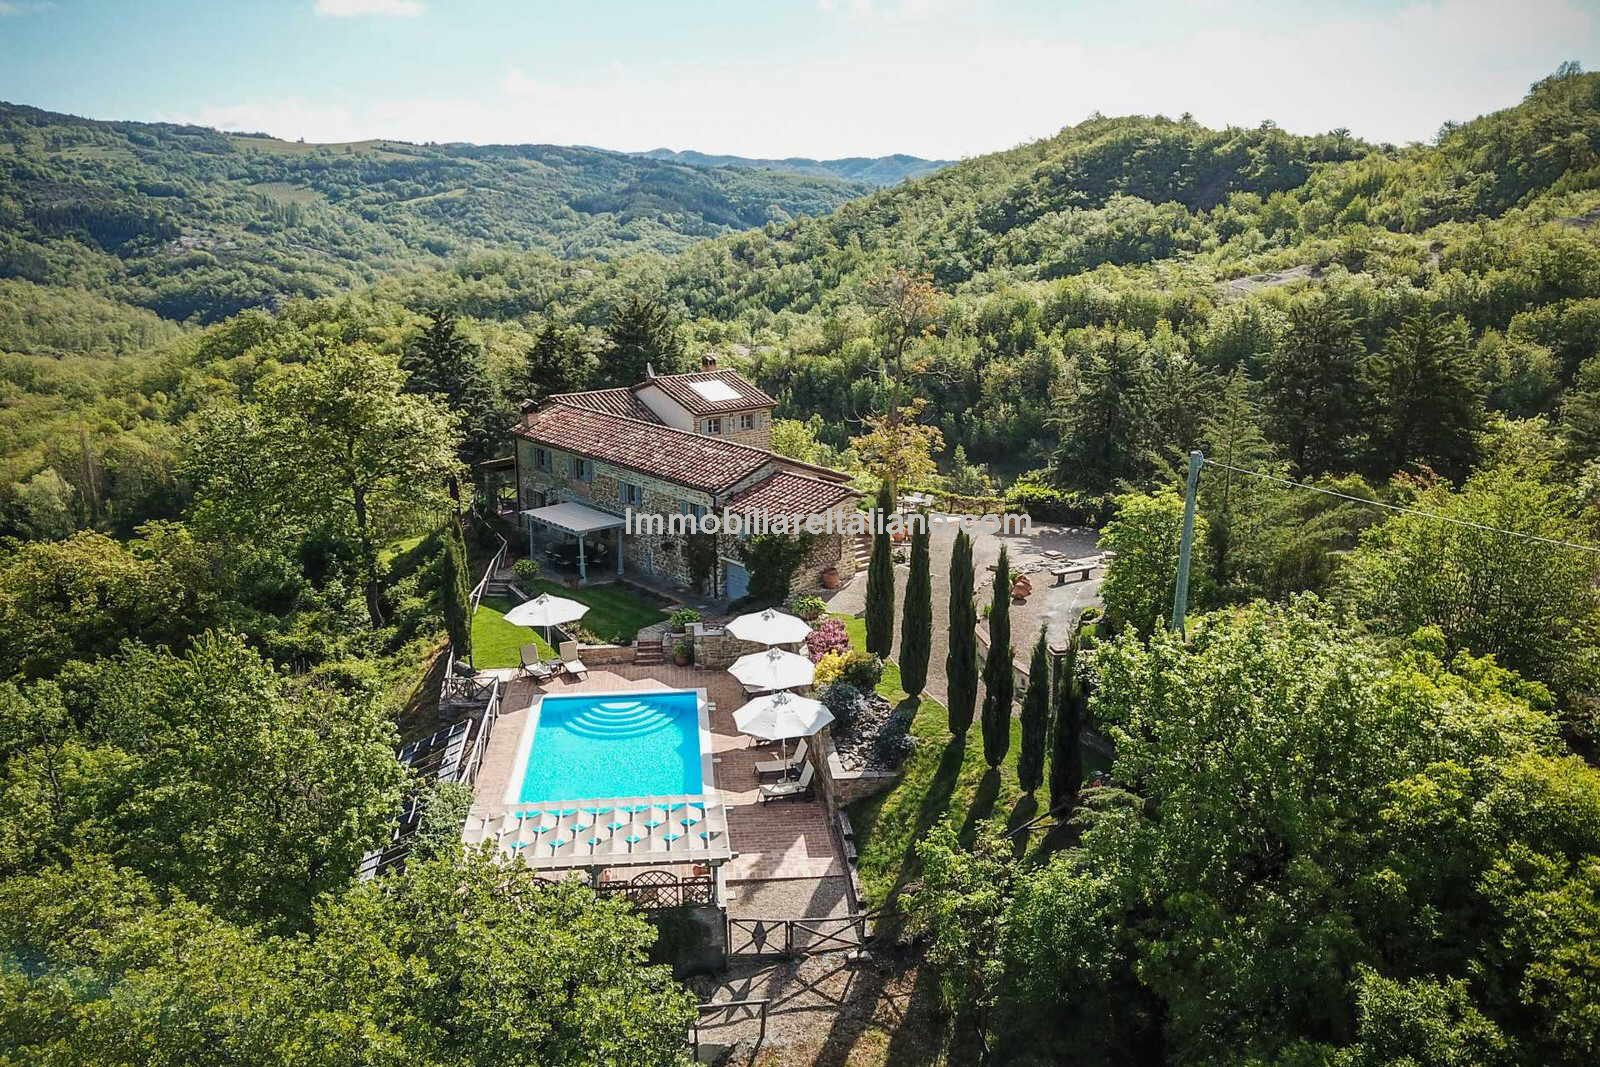 Views over the Umbria Hills